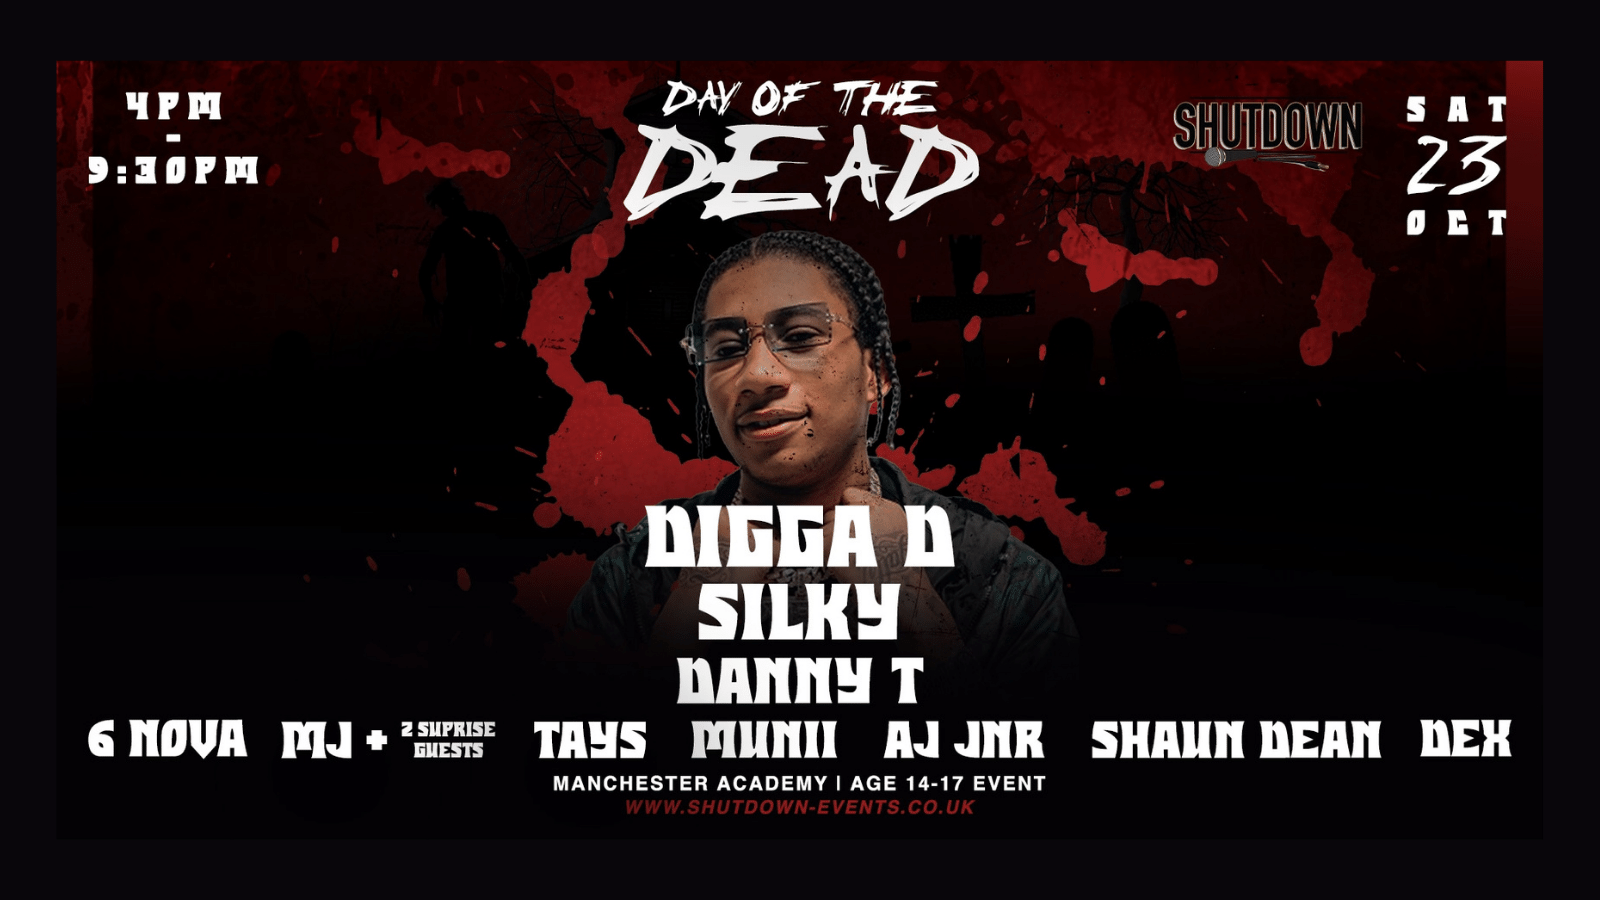 Shutdown Manchester – Day Of The Dead